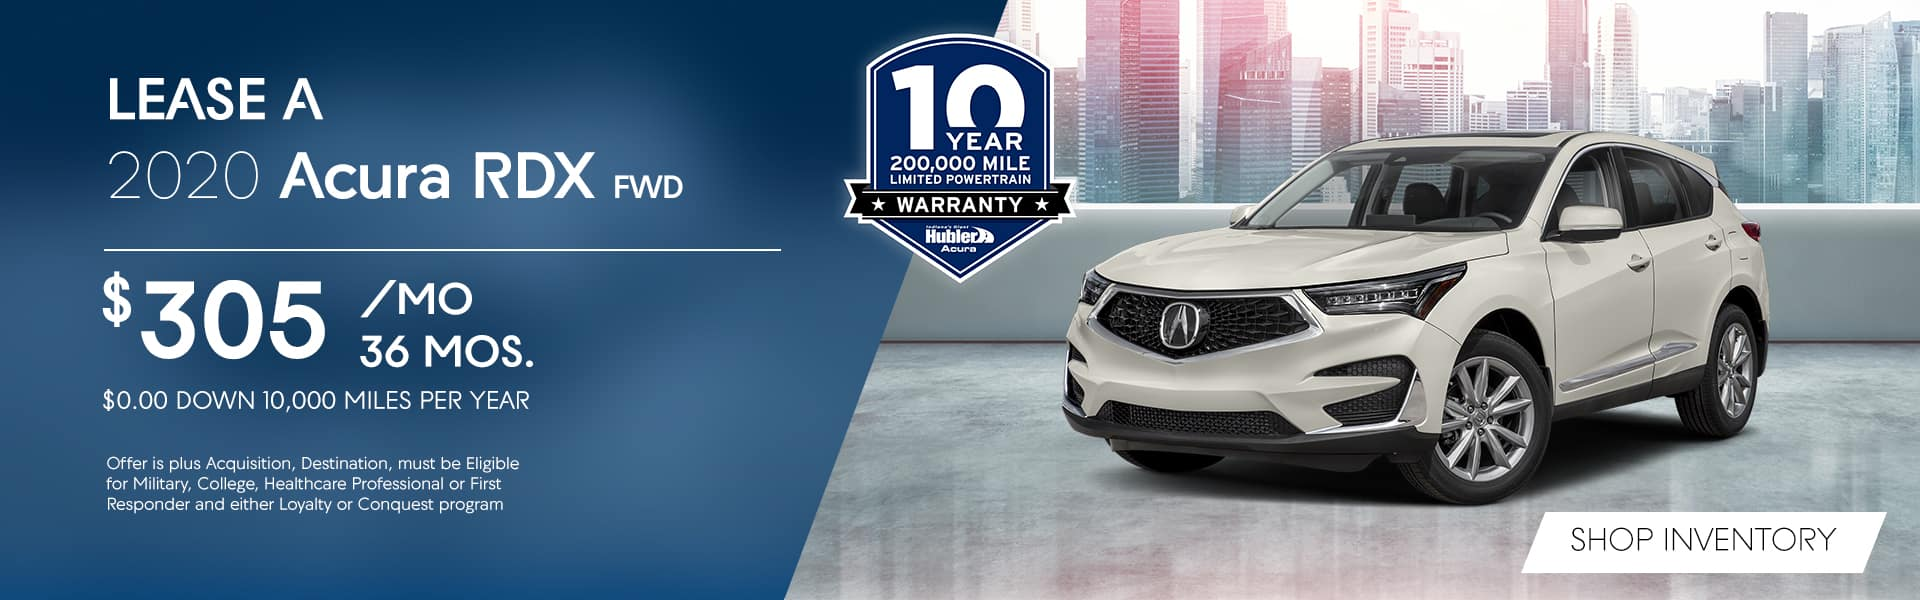 2020 RDX Lease Special